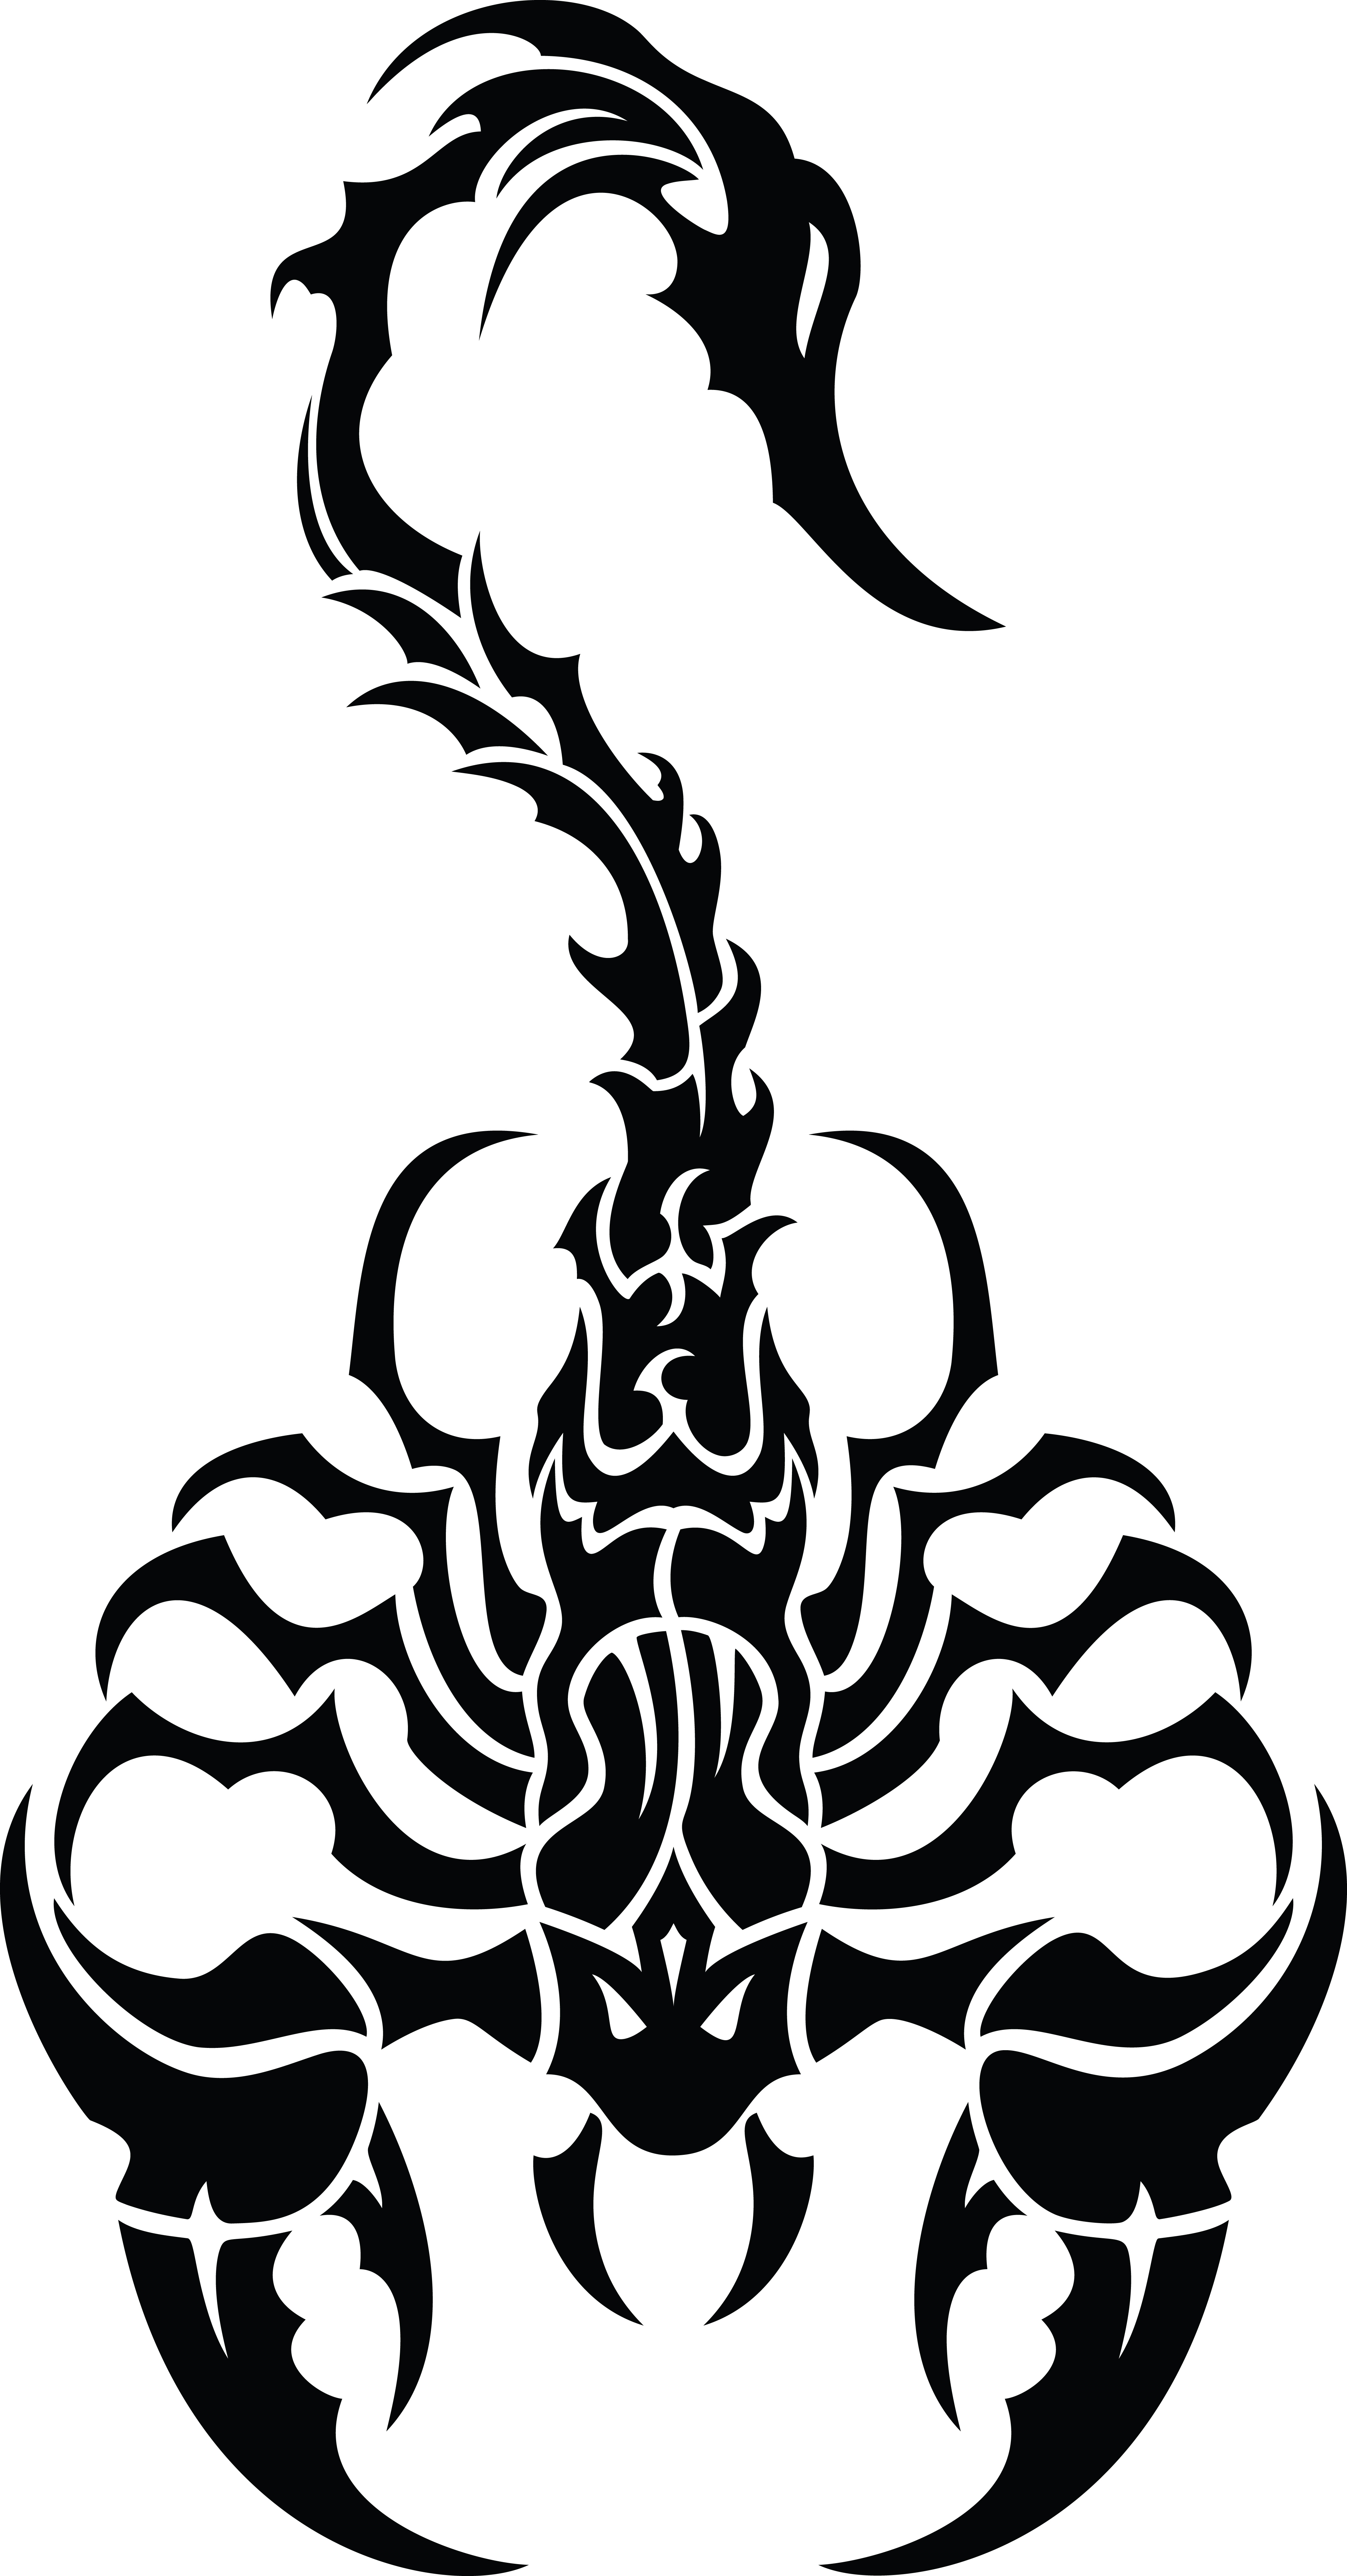 Free Clipart of a black and white tribal scorpion.